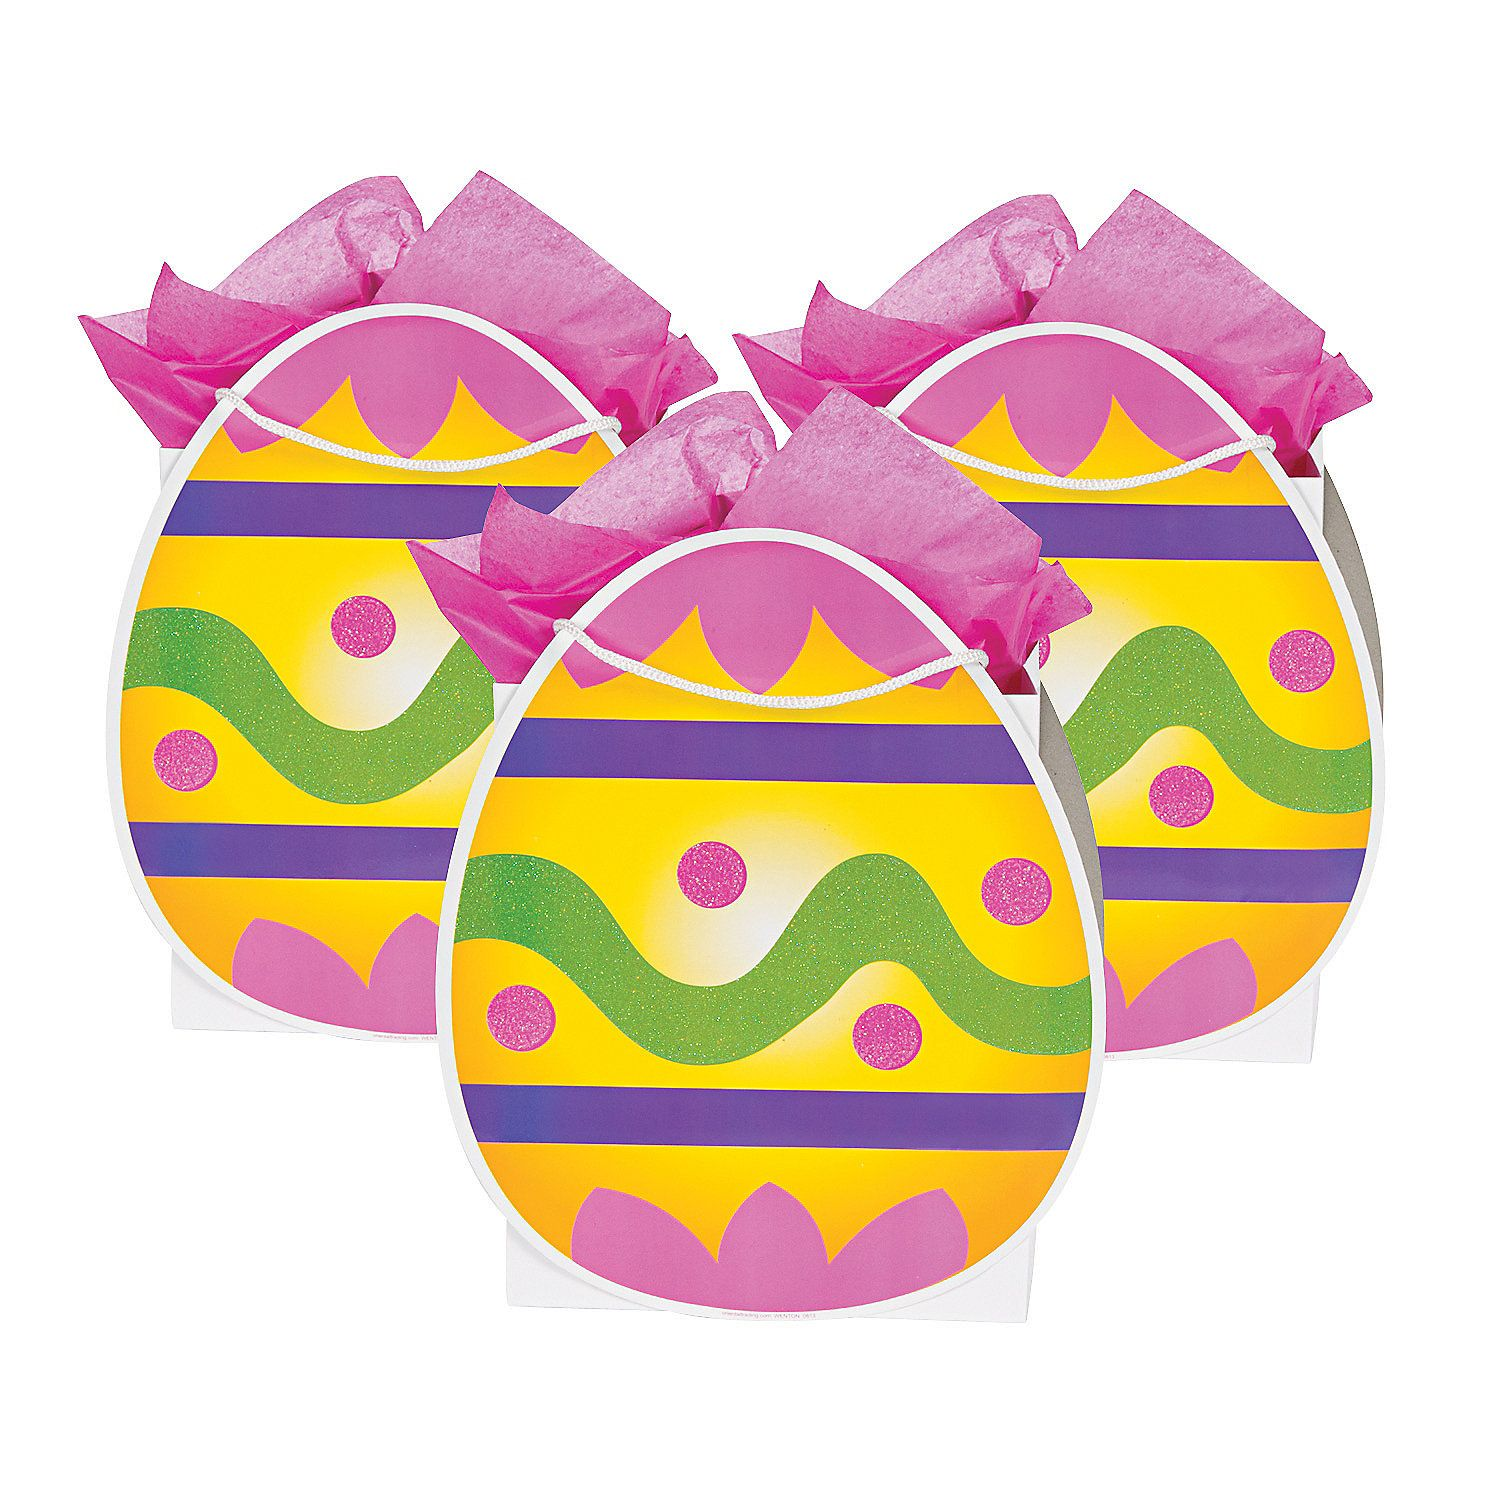 Easter egg cutout gift bags orientaltrading willy wonka easter egg cutout gift bags orientaltrading negle Choice Image